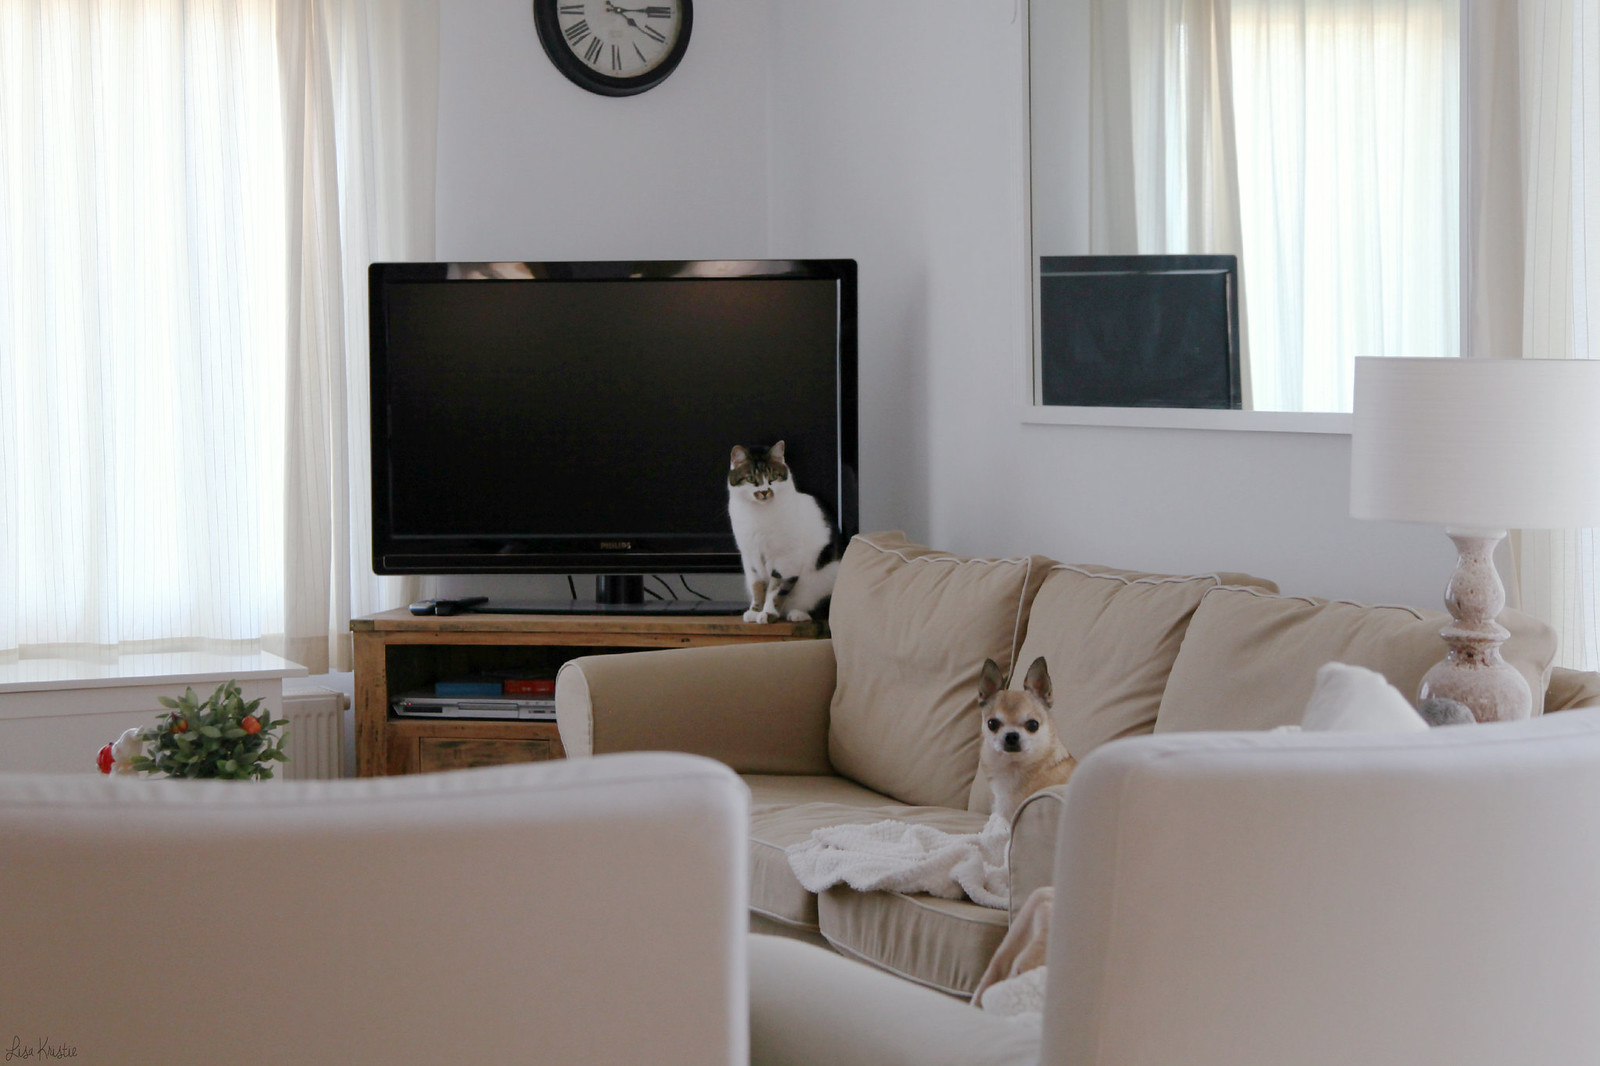 cat chihuahua dog home interior beige white living room sofa couch tv european scandinavian style pets